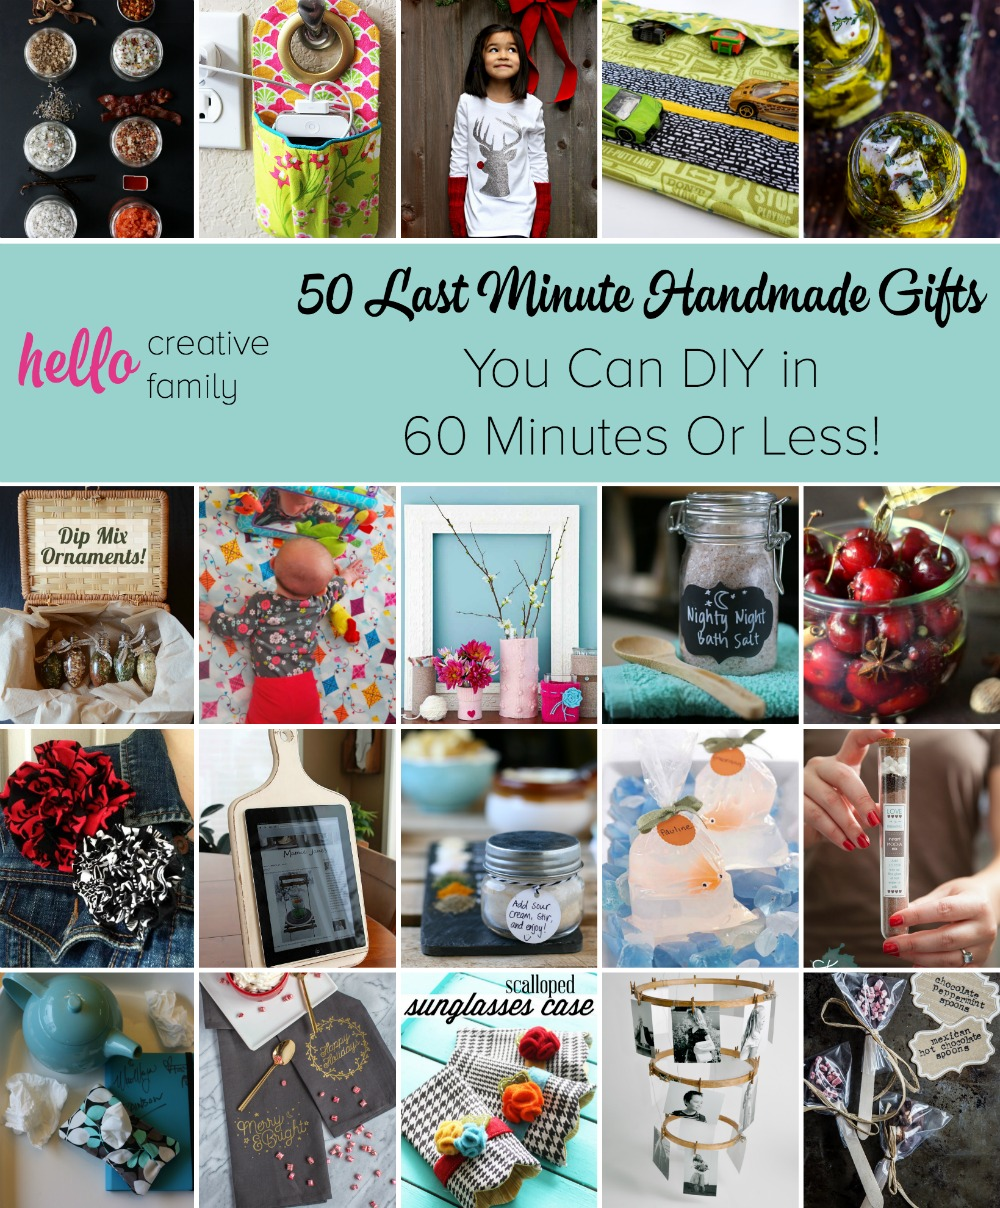 50+ Last Minute Handmade Gifts You Can DIY In 60 Minutes